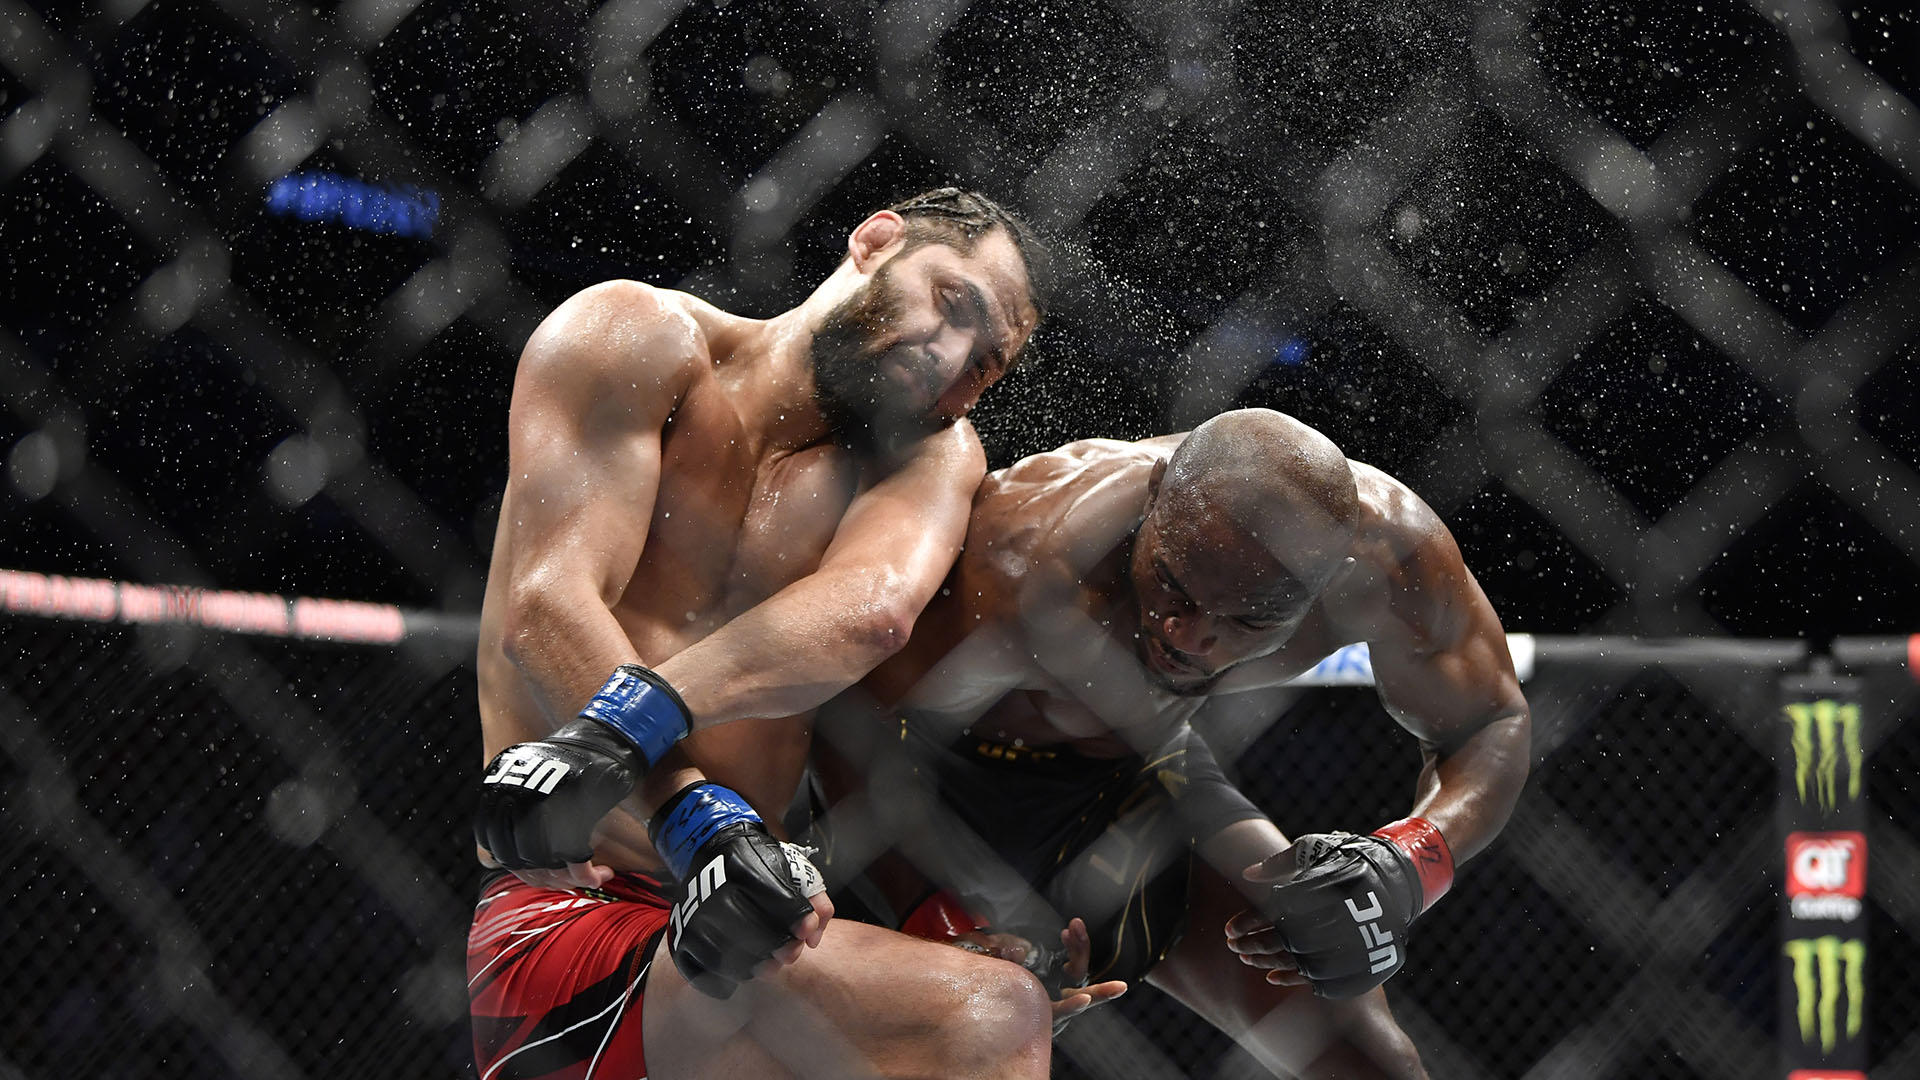 Kamaru Usman of Nigeria punches Jorge Masvidal in their UFC welterweight championship bout during the UFC 261 event at VyStar Veterans Memorial Arena on April 24 2021 in Jacksonville Florida (Photo by Chris Unger/Zuffa LLC)